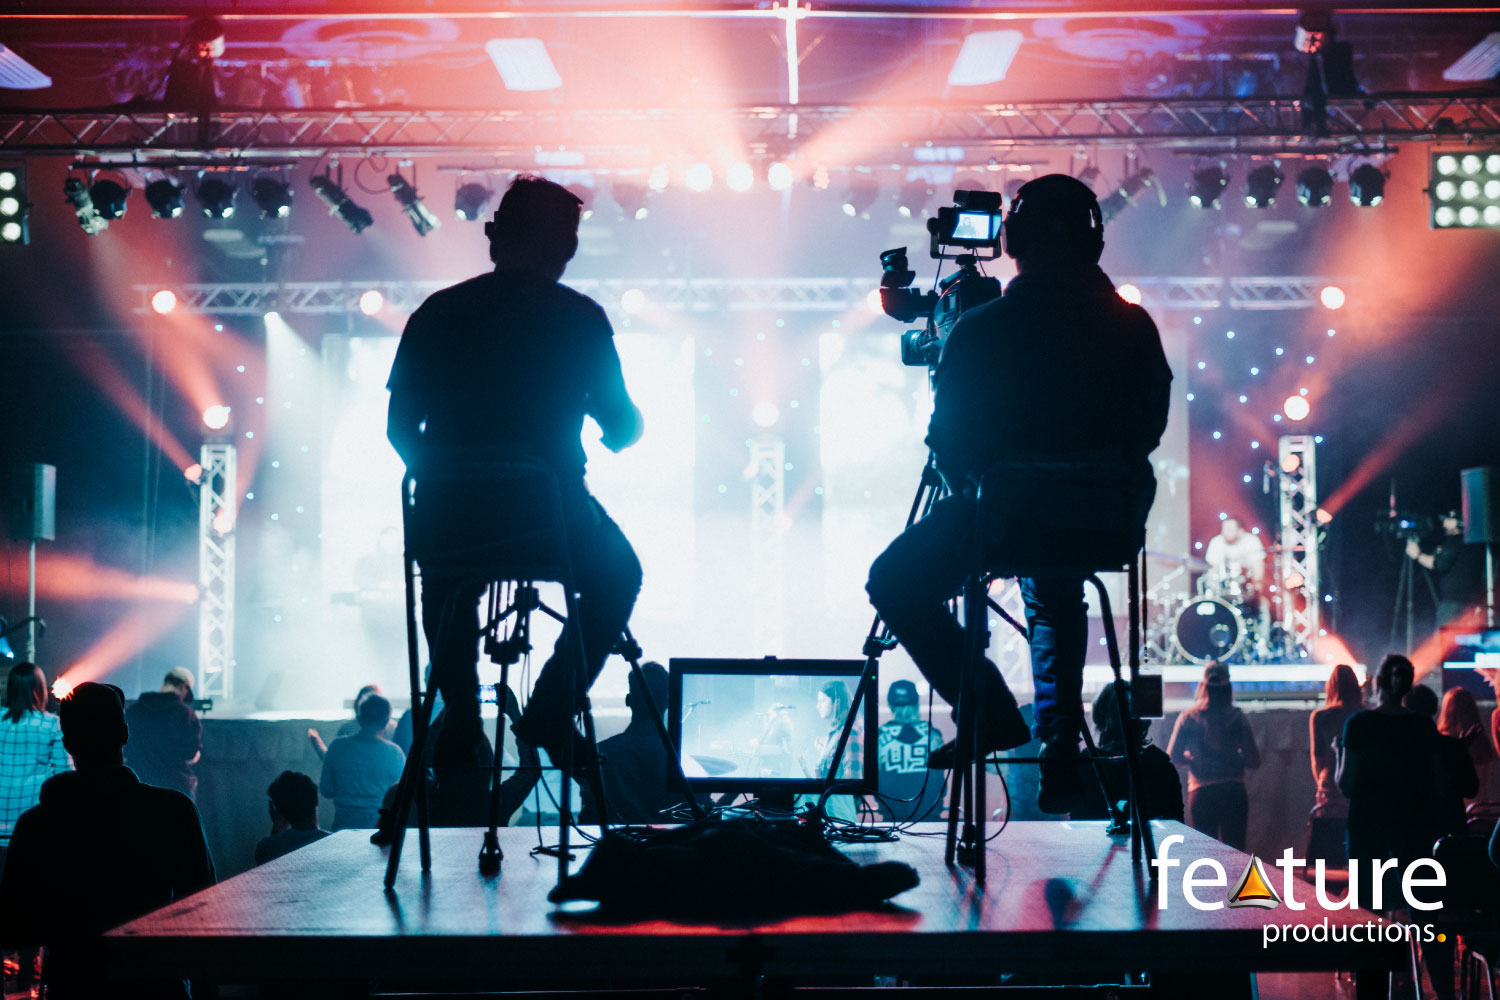 camera-riser-concert-stage-lighting-feature-productions-logo.jpg